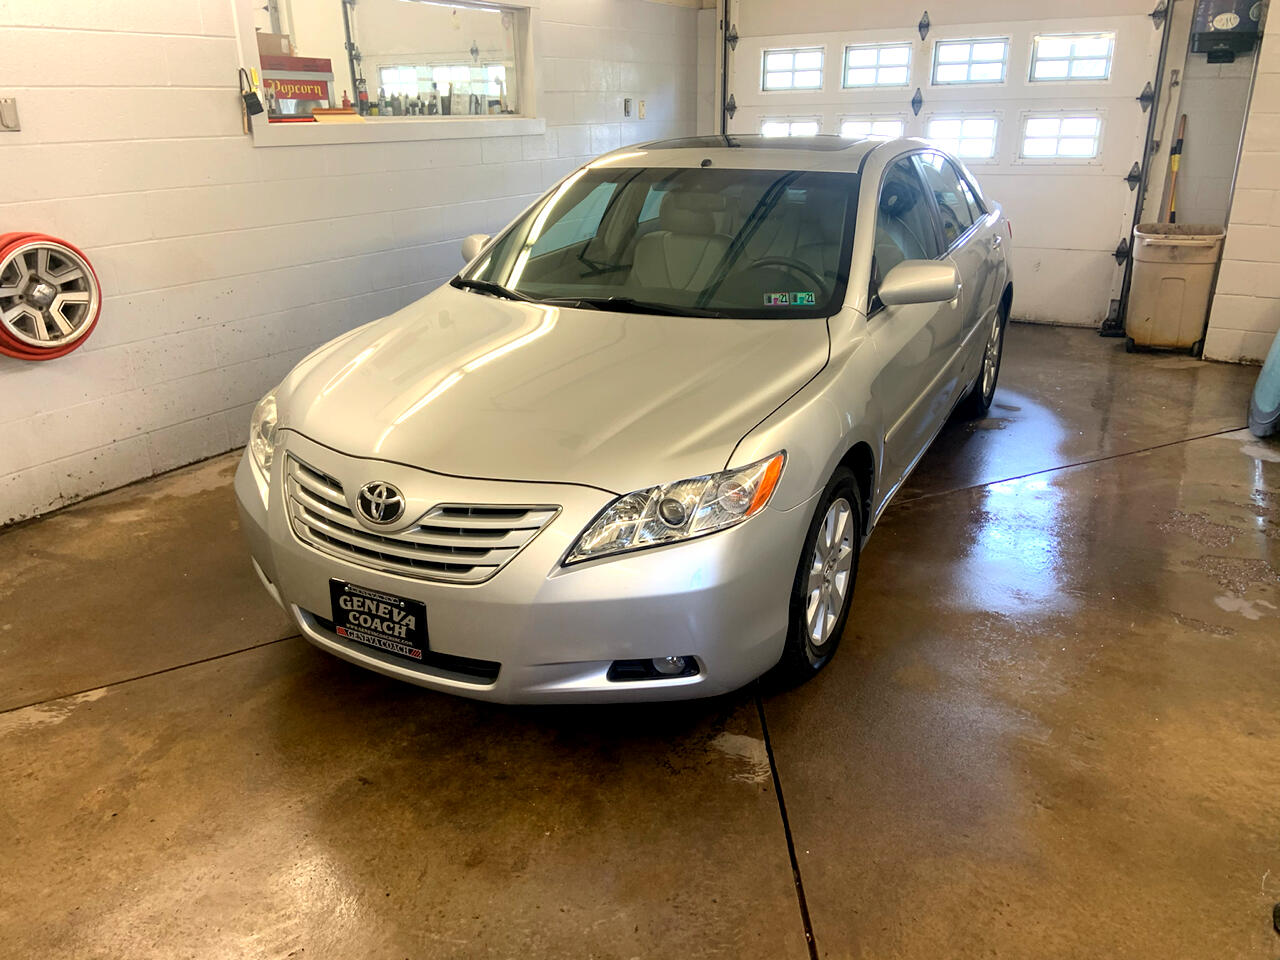 Toyota Camry 4dr Sdn V6 Auto XLE (Natl) 2009